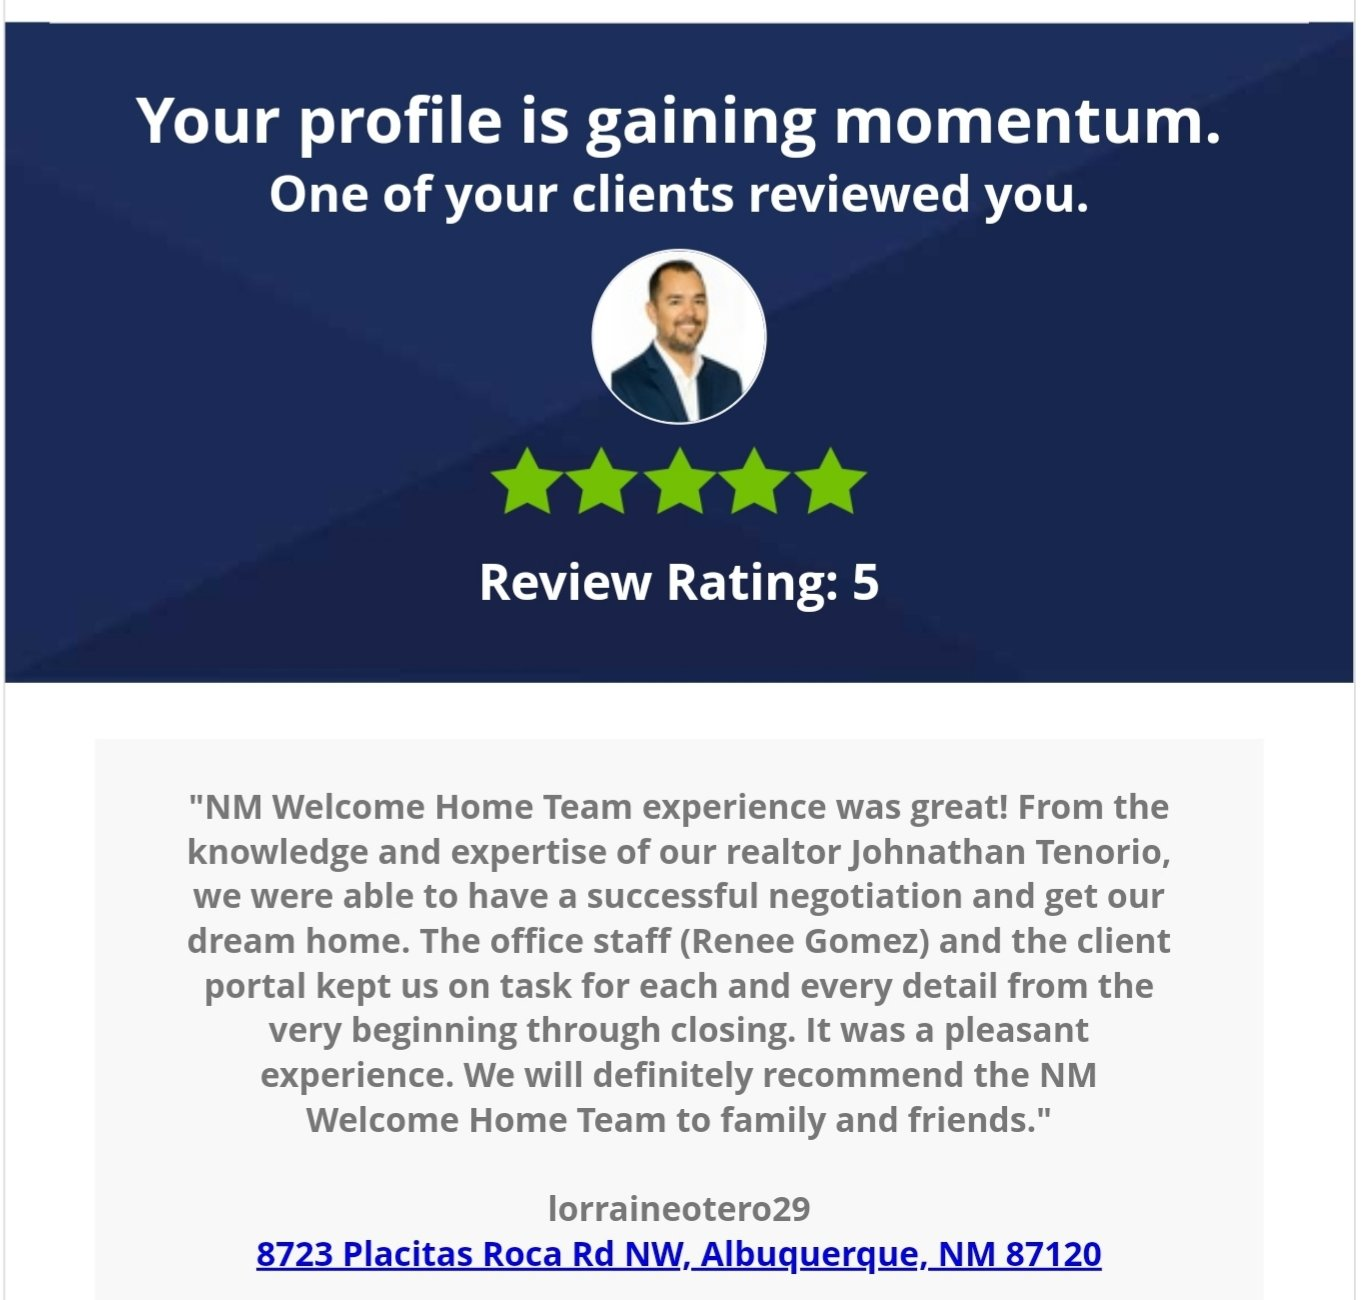 5 Star Review The NMWelcomeHome Team